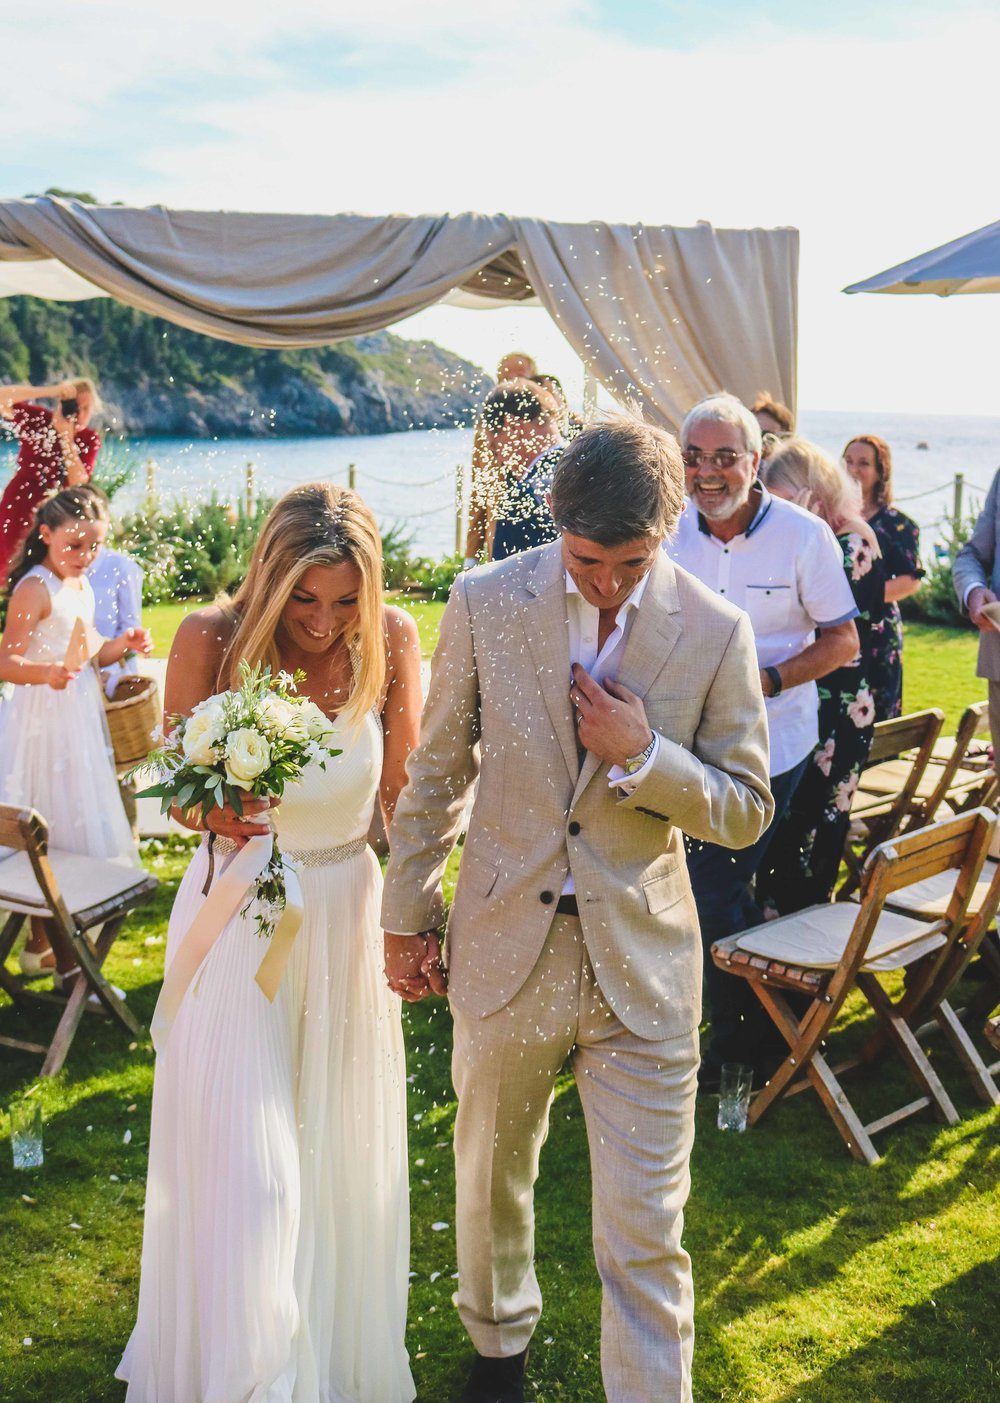 Scott & Annabel Wedding - Paleokastritsa, Corfu, September 2018